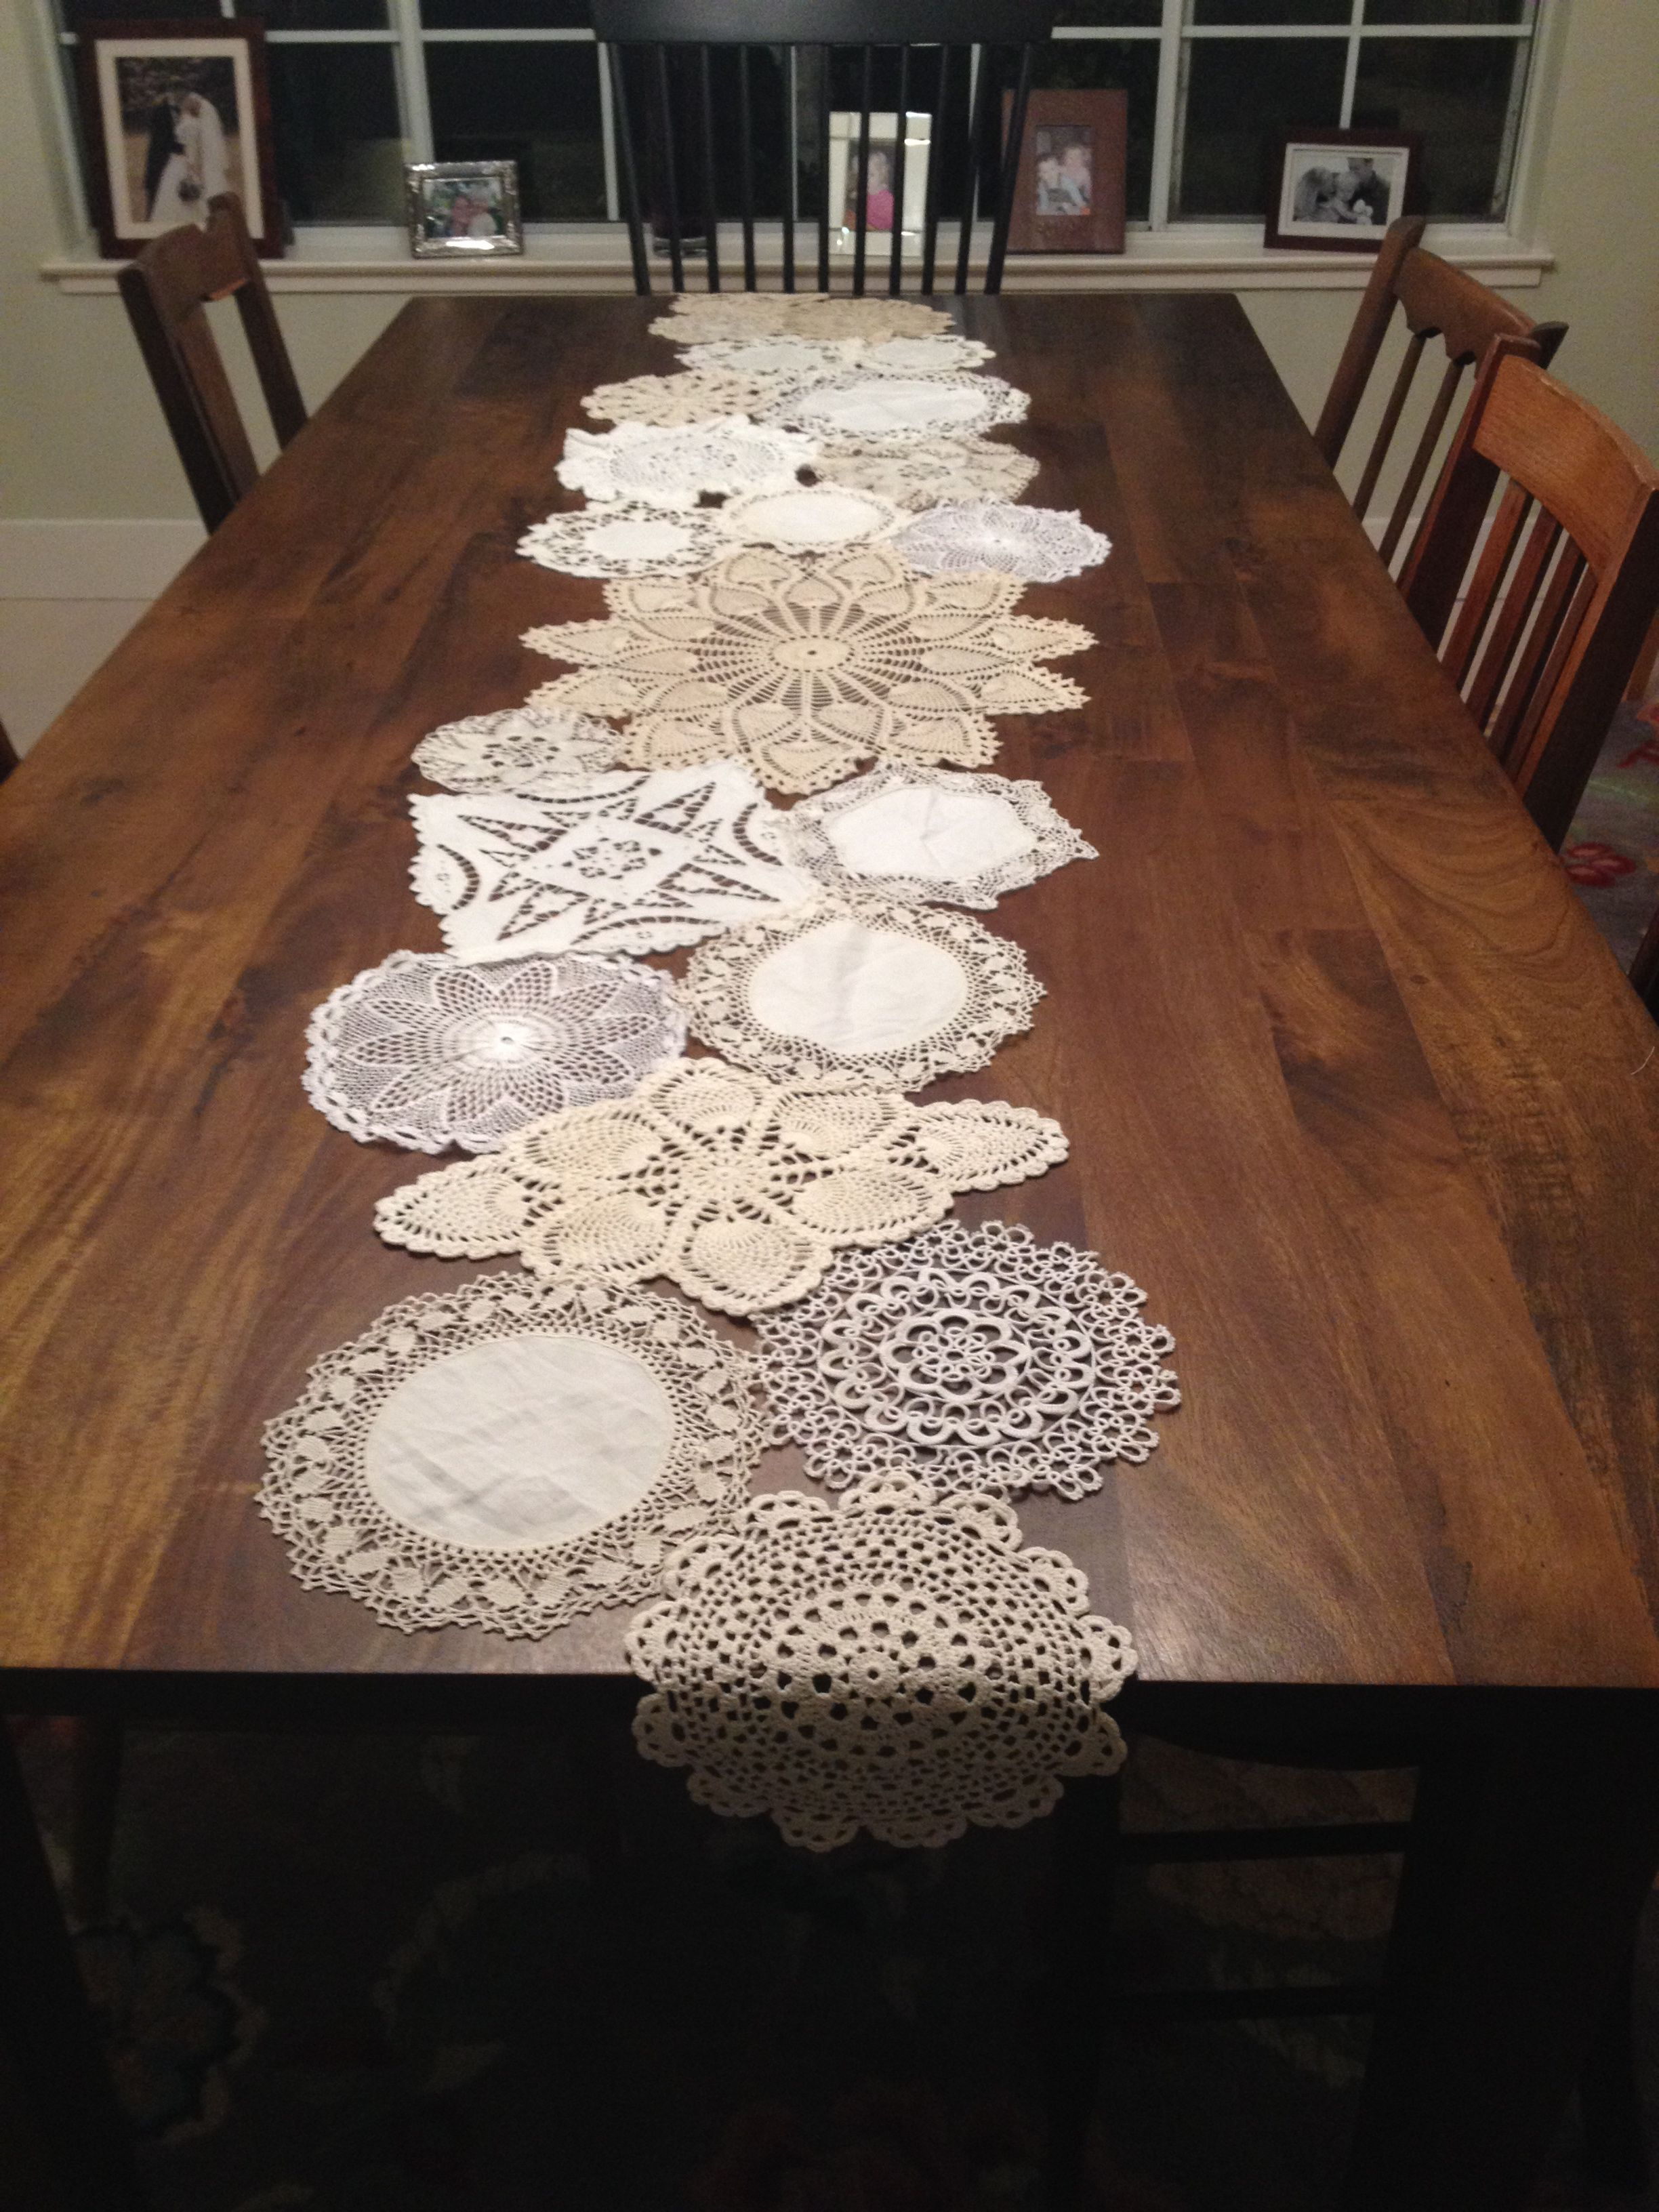 Doily Table Runner For The Home Doilies Crafts